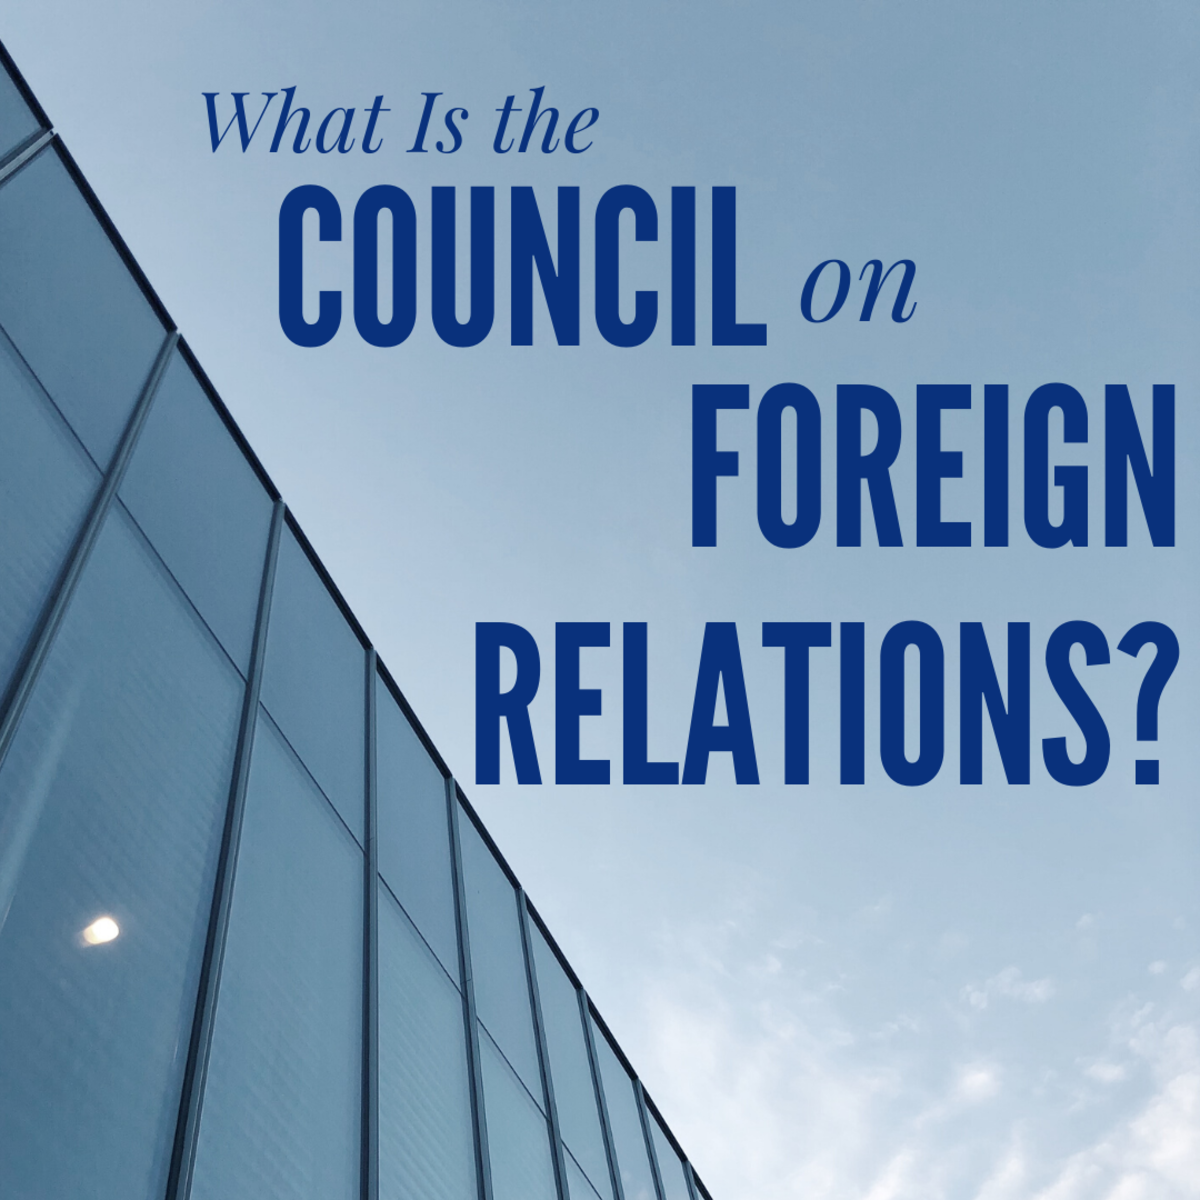 The Council on Foreign Relations: Questions and Theories